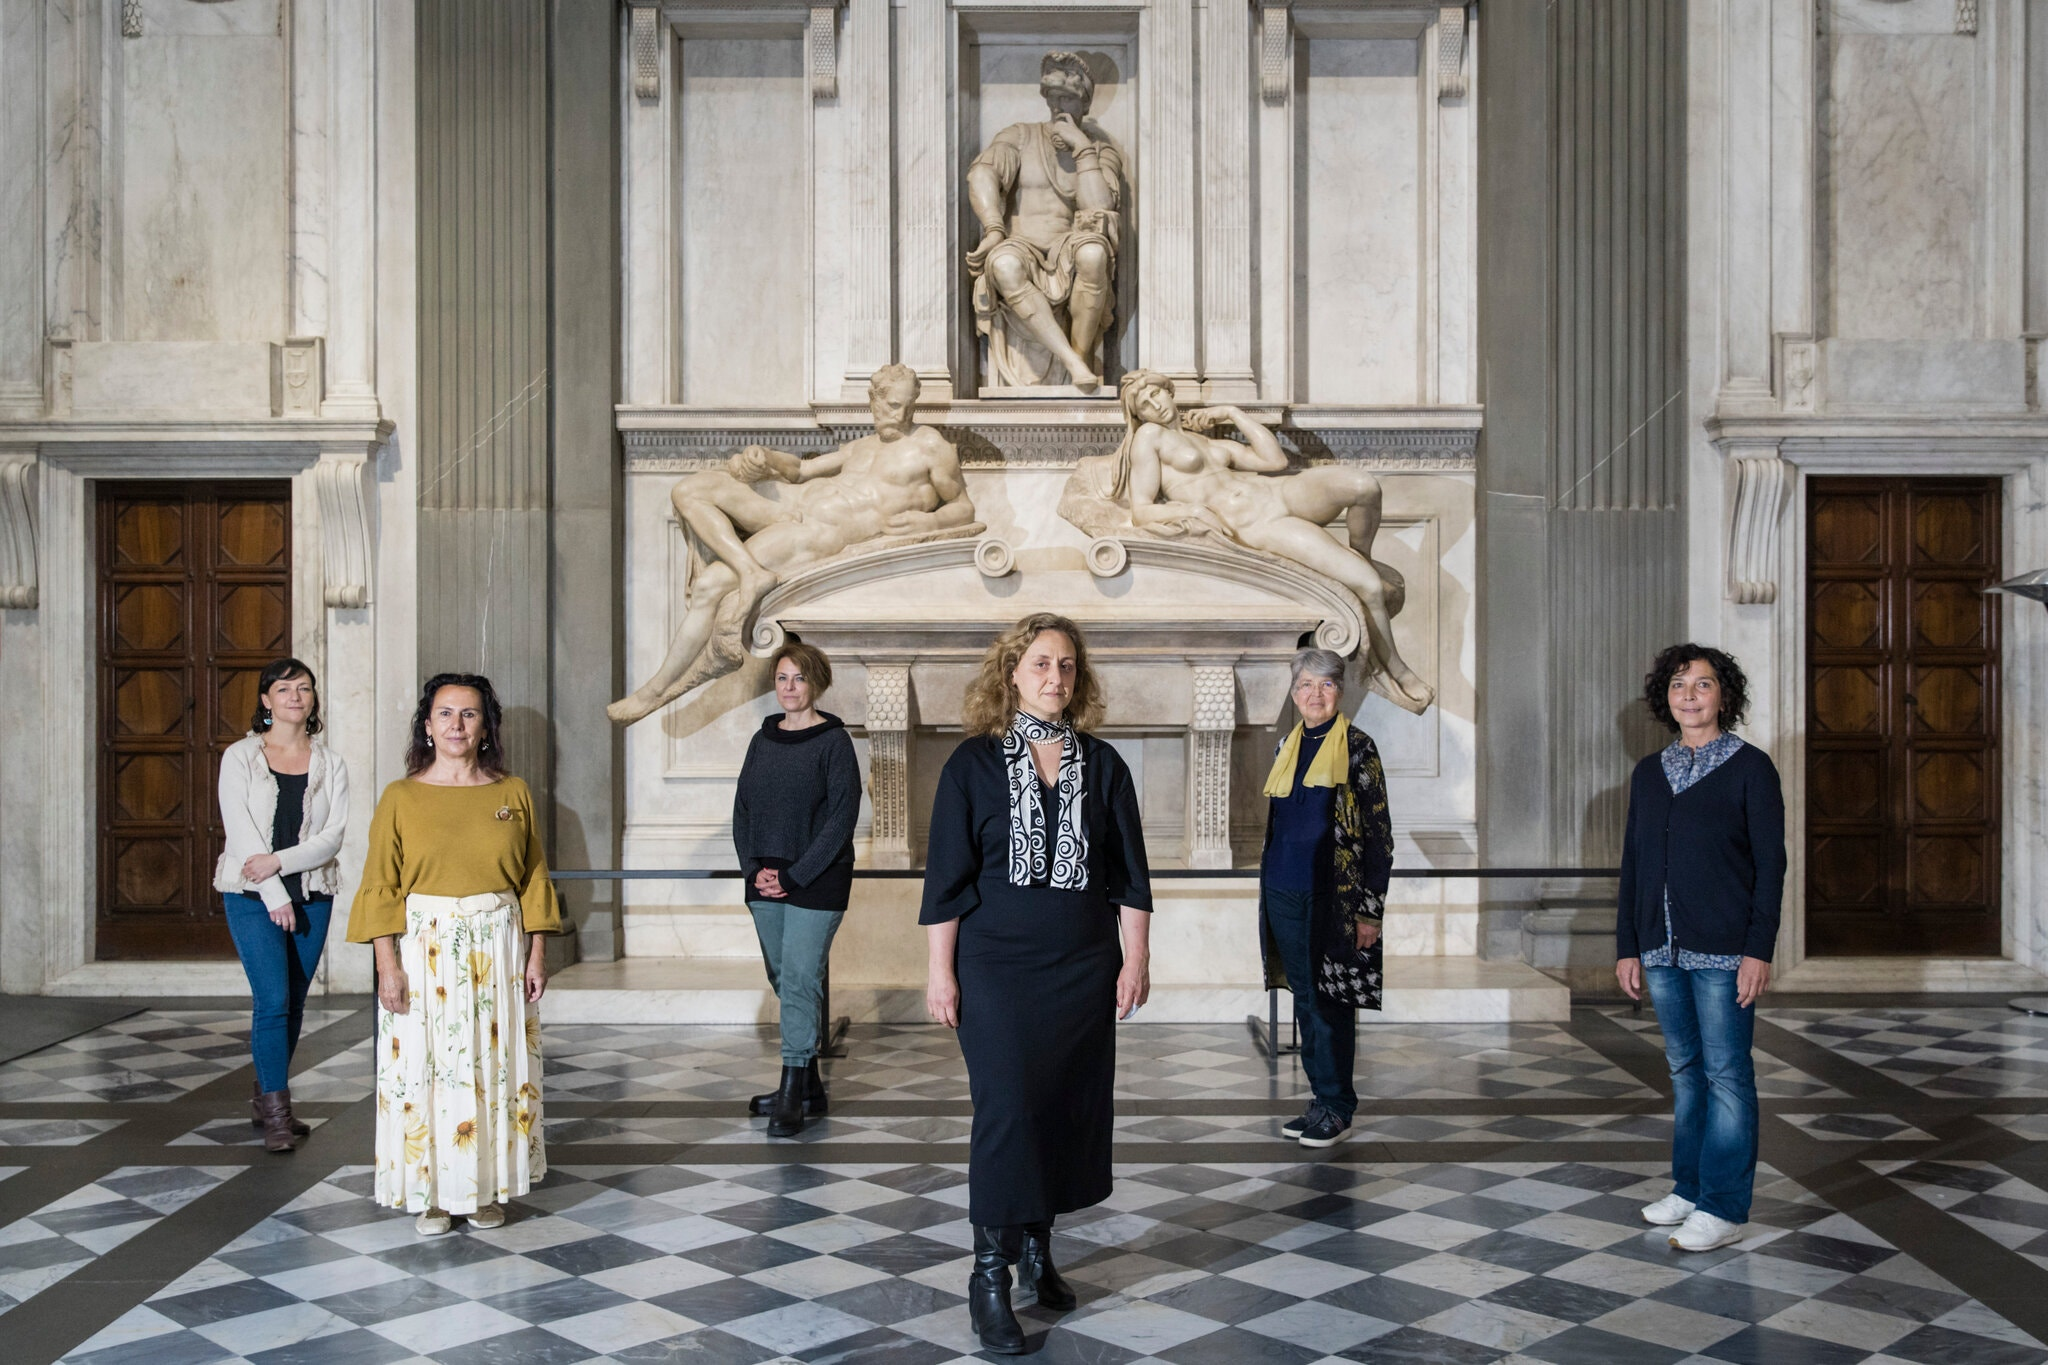 In an ornate, marble hall, with columns and carved statues against the far back wall, six light-skinned woman stand spaced out from one another in a zig/zag pattern. Some wear jeans an sneakers, other are in dresses with boots. They all stare directly at the camera.